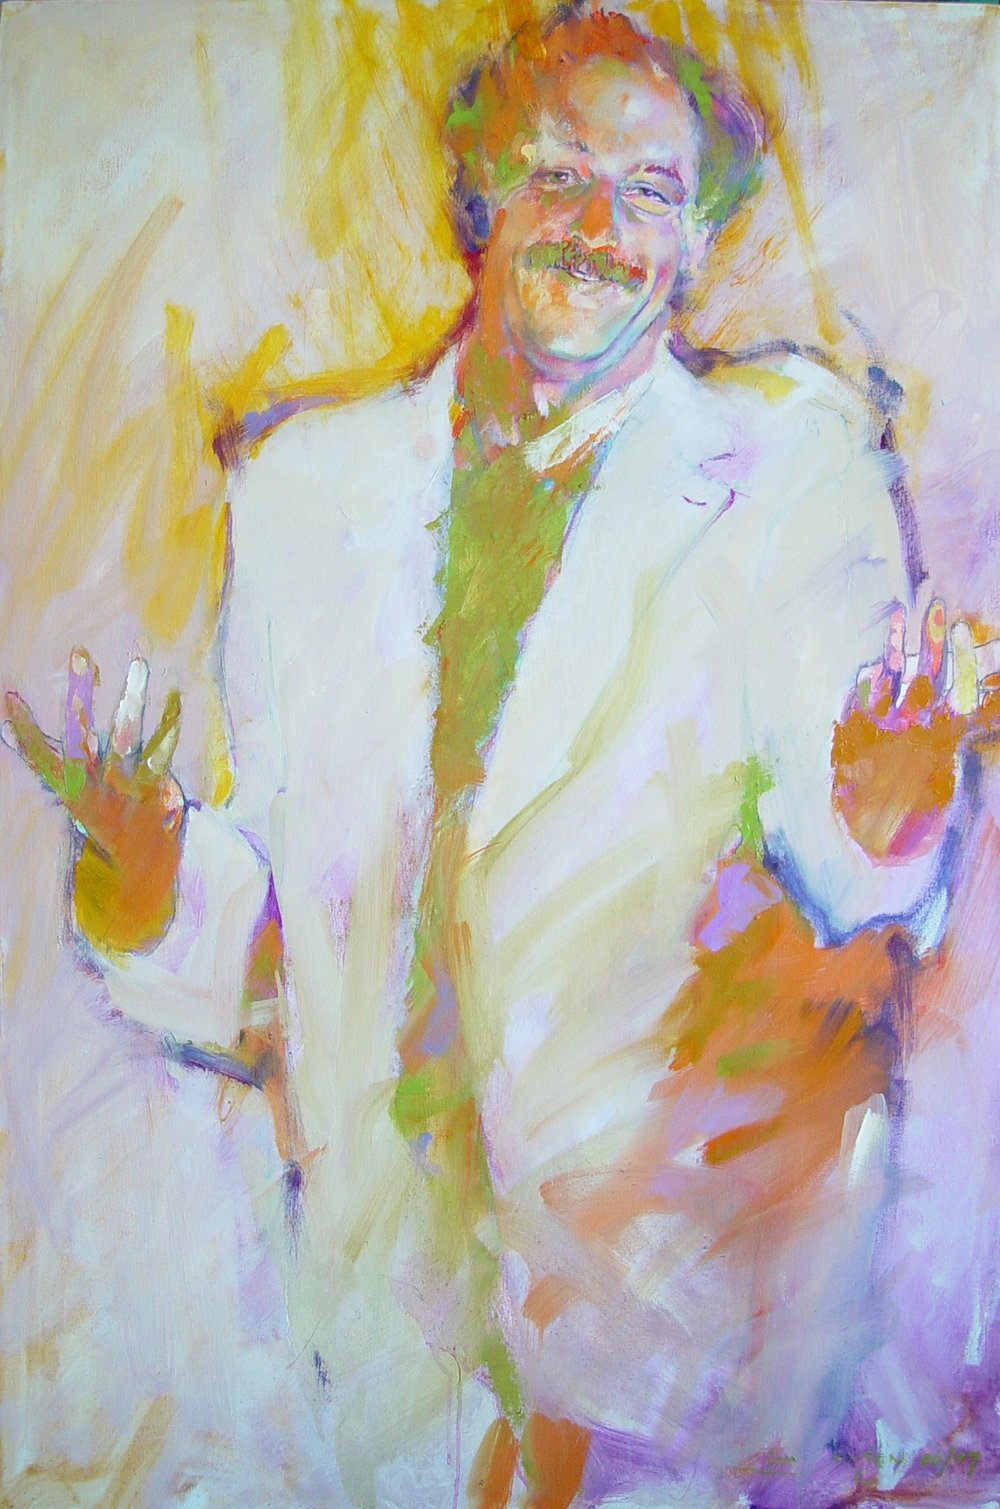 Paint 3. Larry Smith #3_Oil on Canvas_ 2006_36x24.JPG